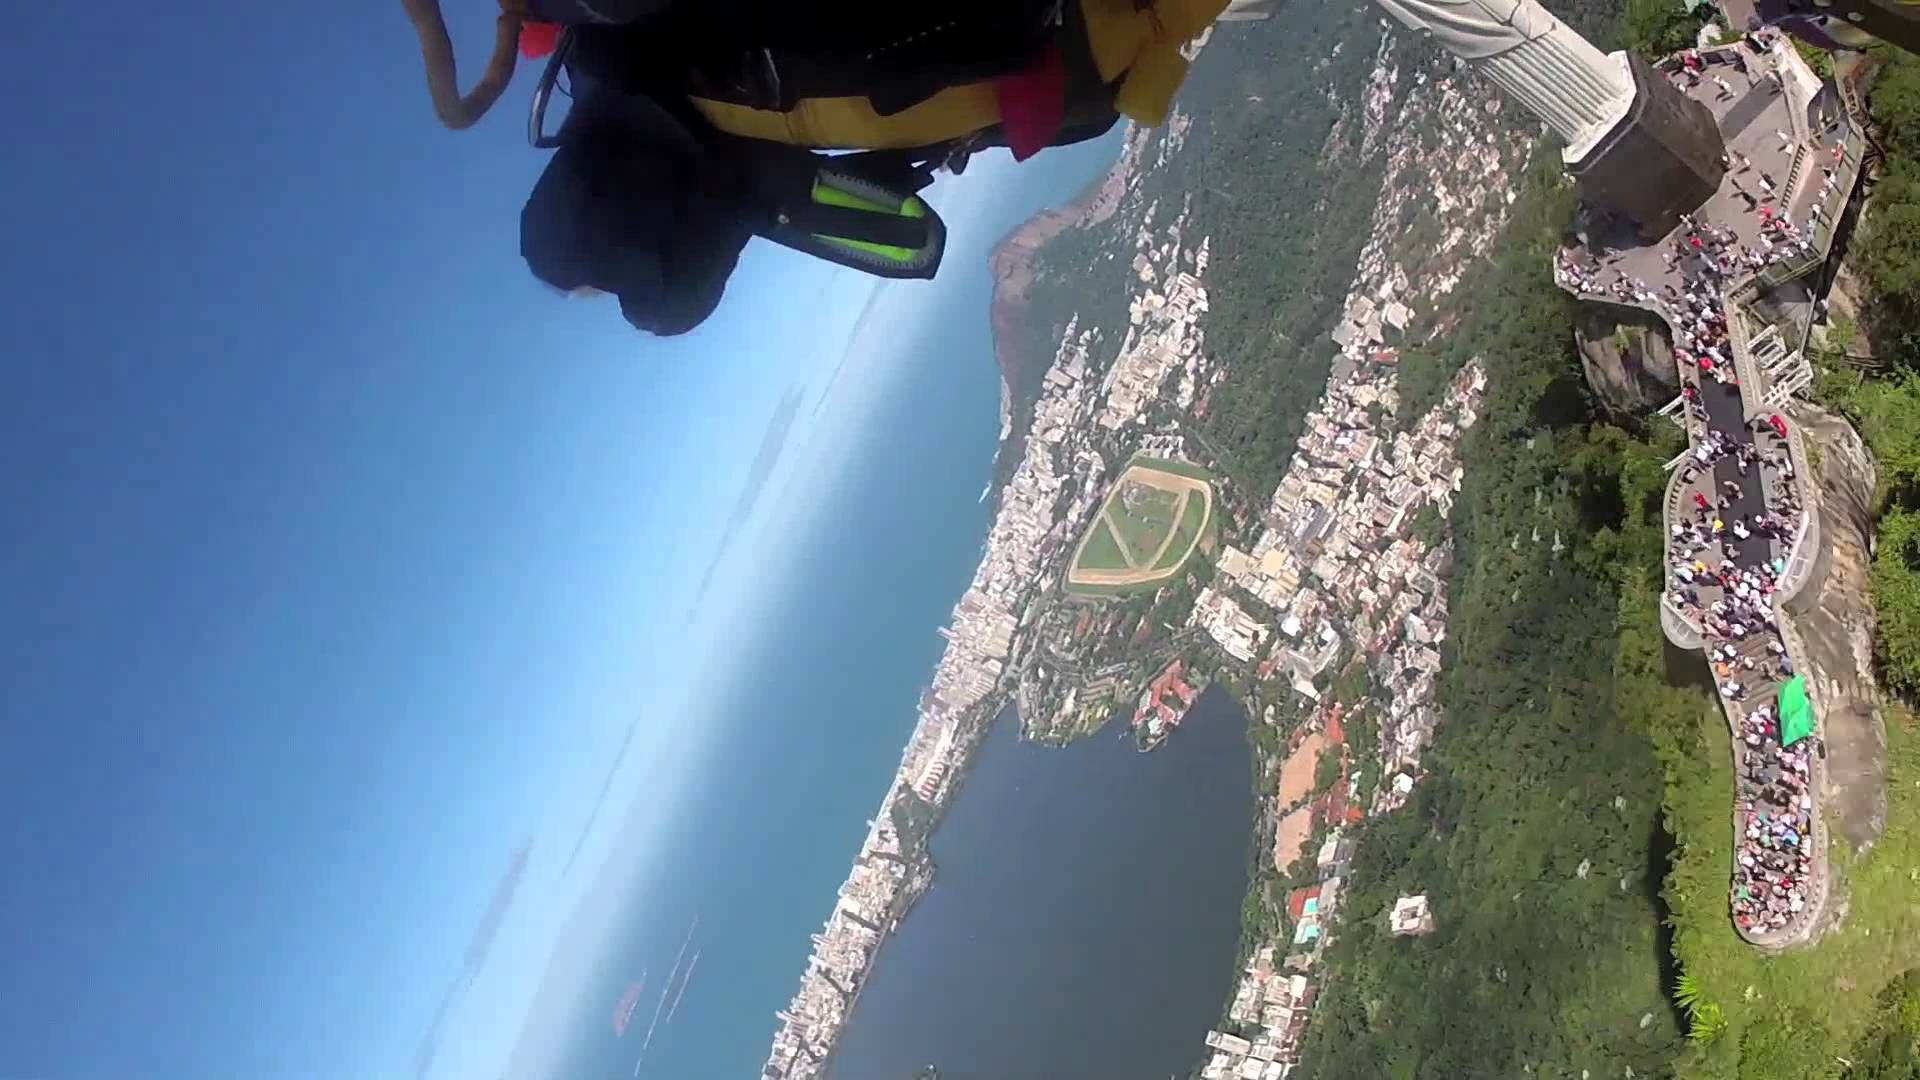 Yves Jetman Rossy Once Again Pushed The Boundaries Of Aviation By Completing A Fabulous Flight Above The City O Inspirational People Places Things Pinte